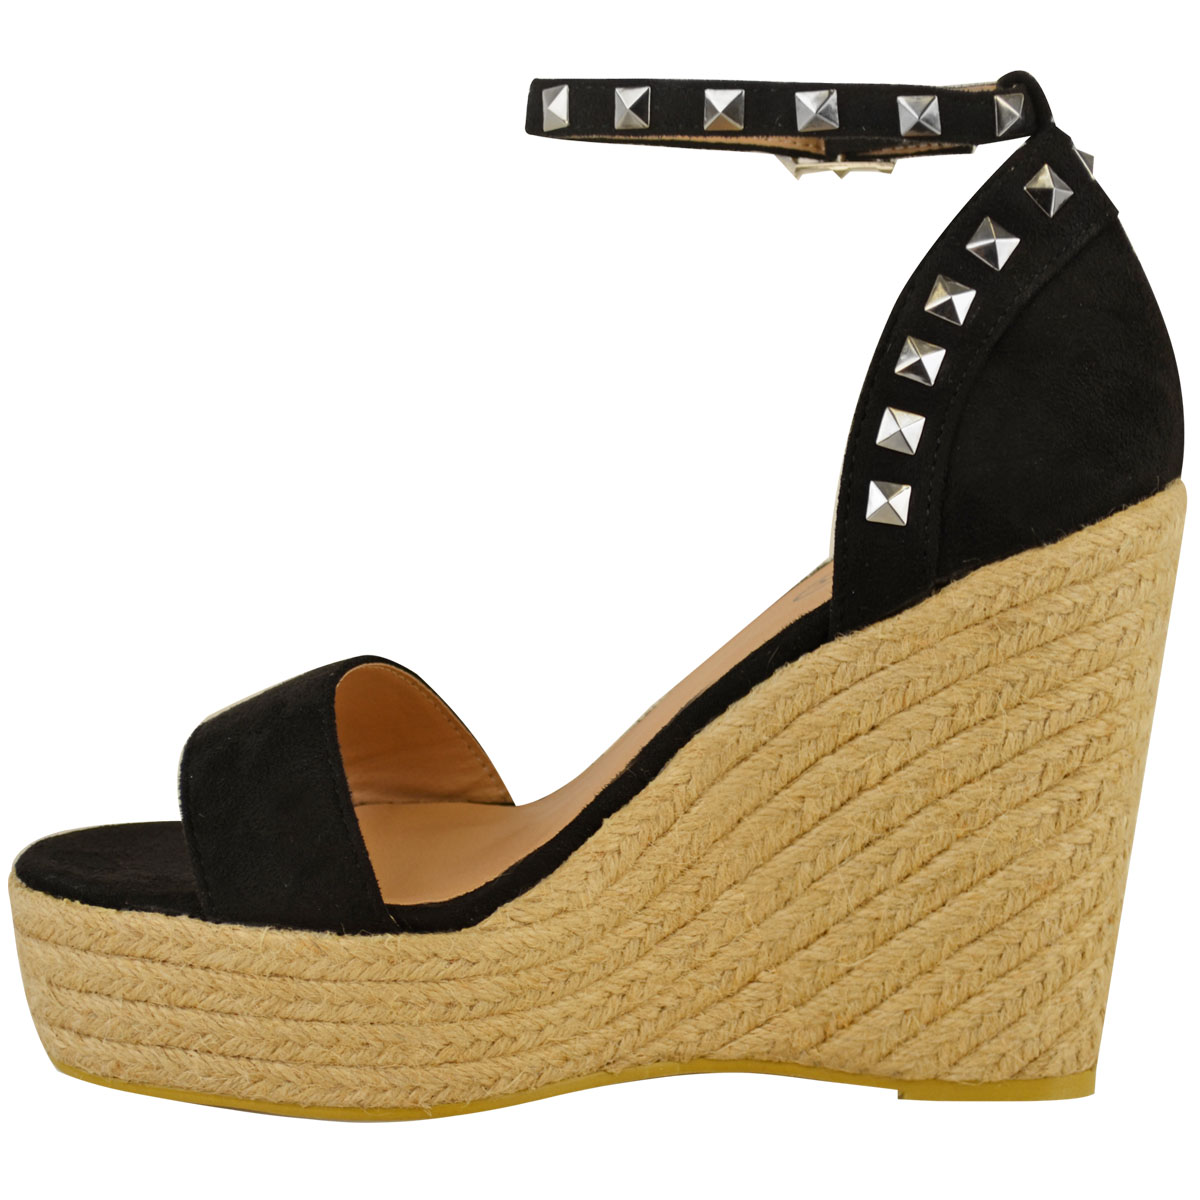 New-Womens-Stud-Espadrille-Wedge-Summer-Sandal-Ladies-Rose-Gold-Party-Shoes-Size thumbnail 4